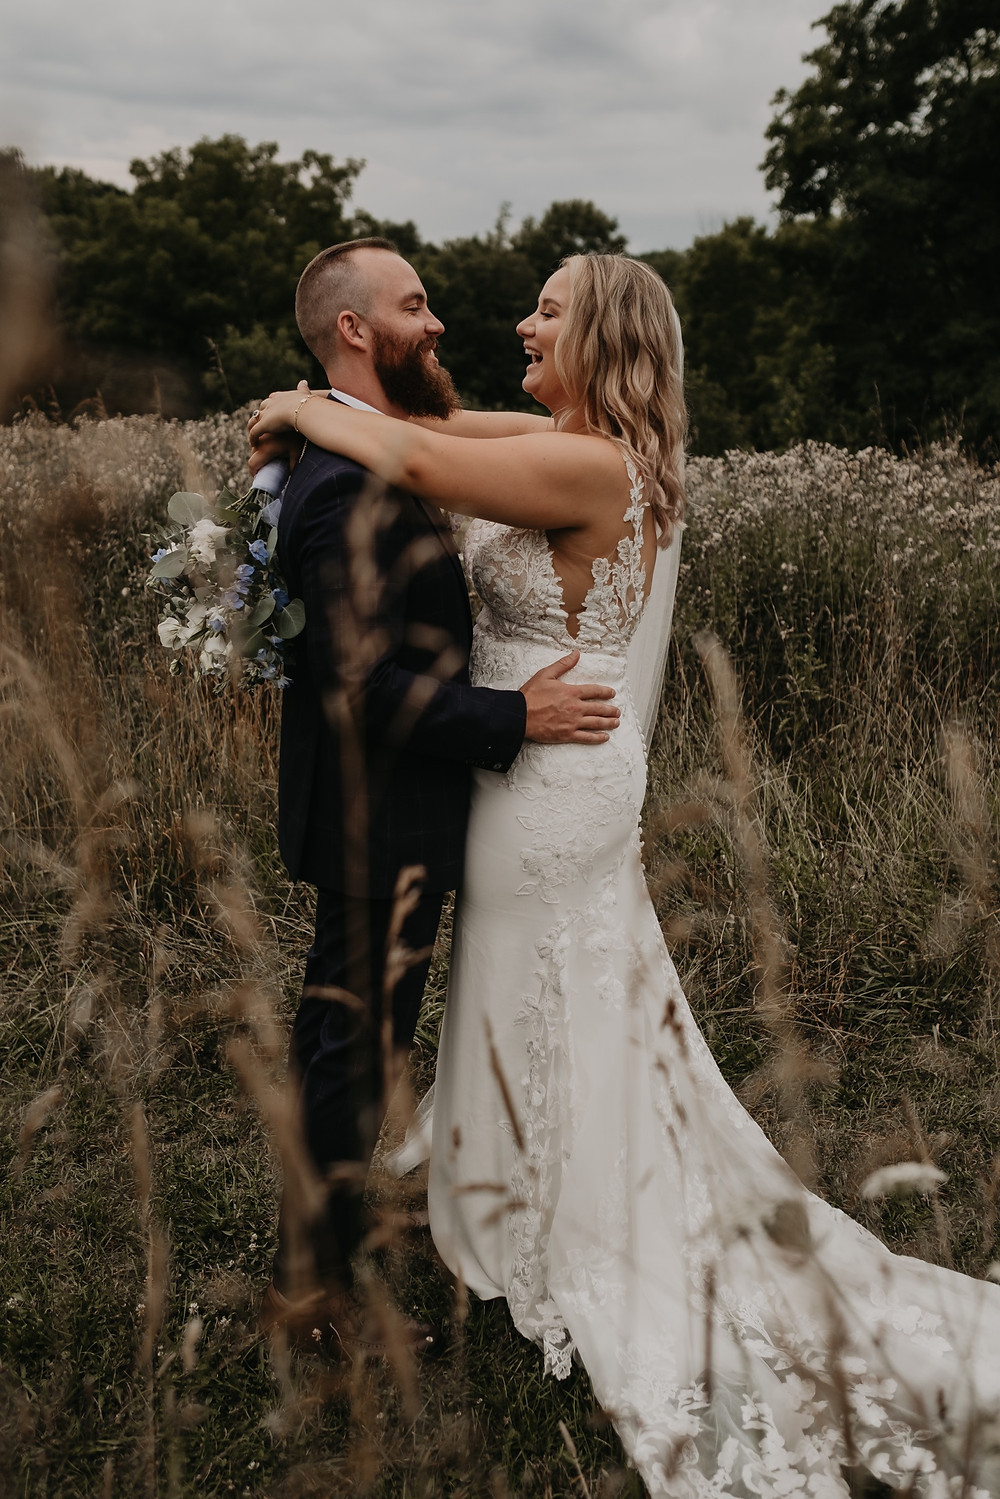 Bride and groom dancing in field on wedding day. Photographed by Nicole Leanne Photography.